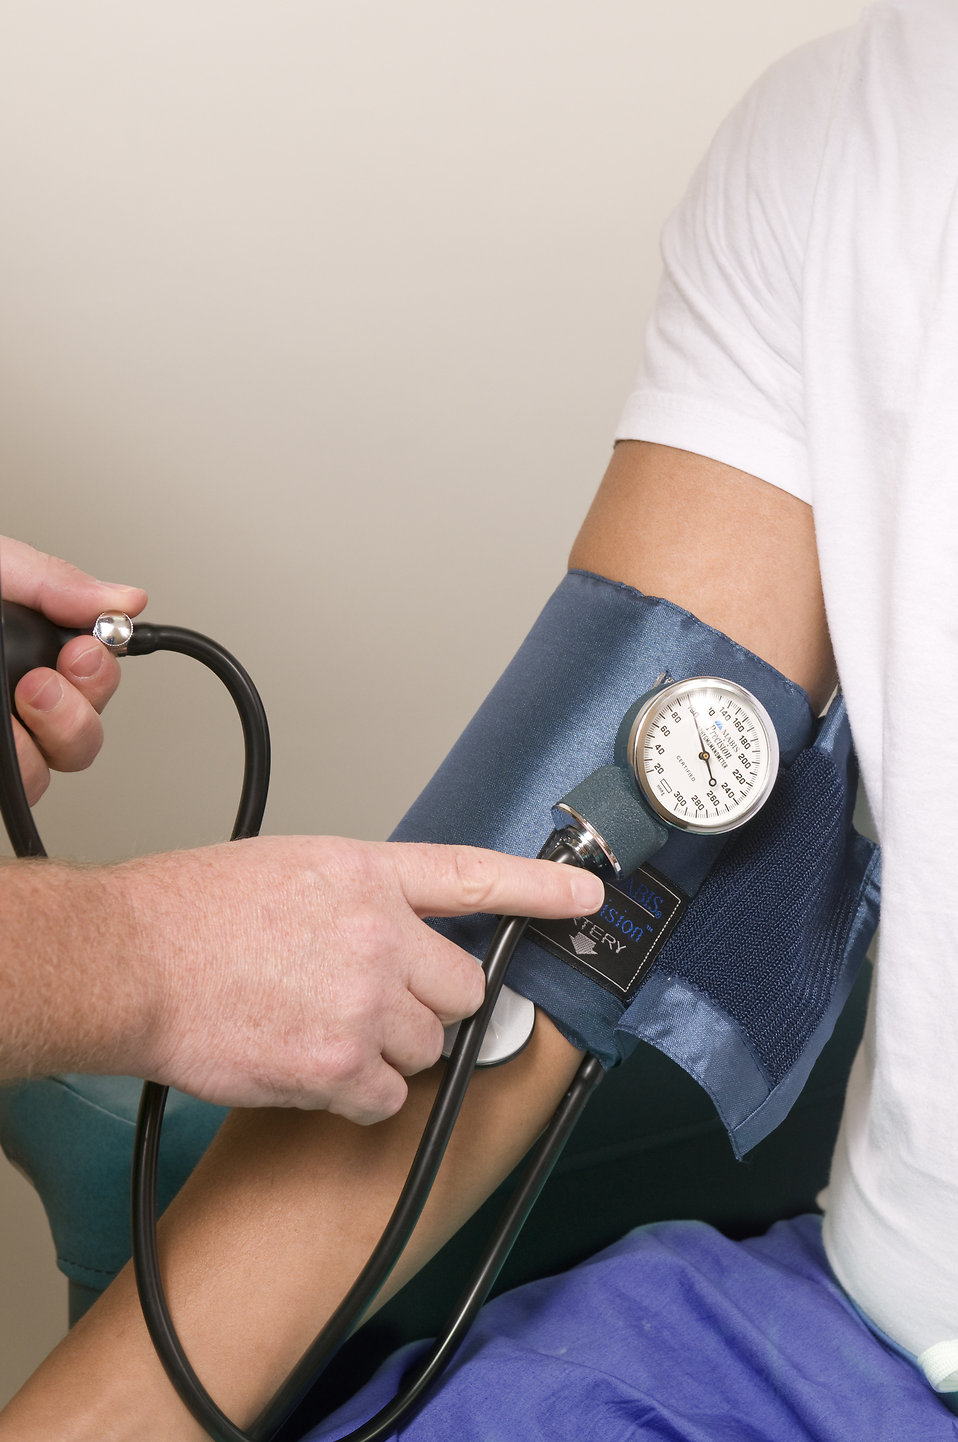 How To Lower Blood Pressure Without Having To Sacrifice Too Much